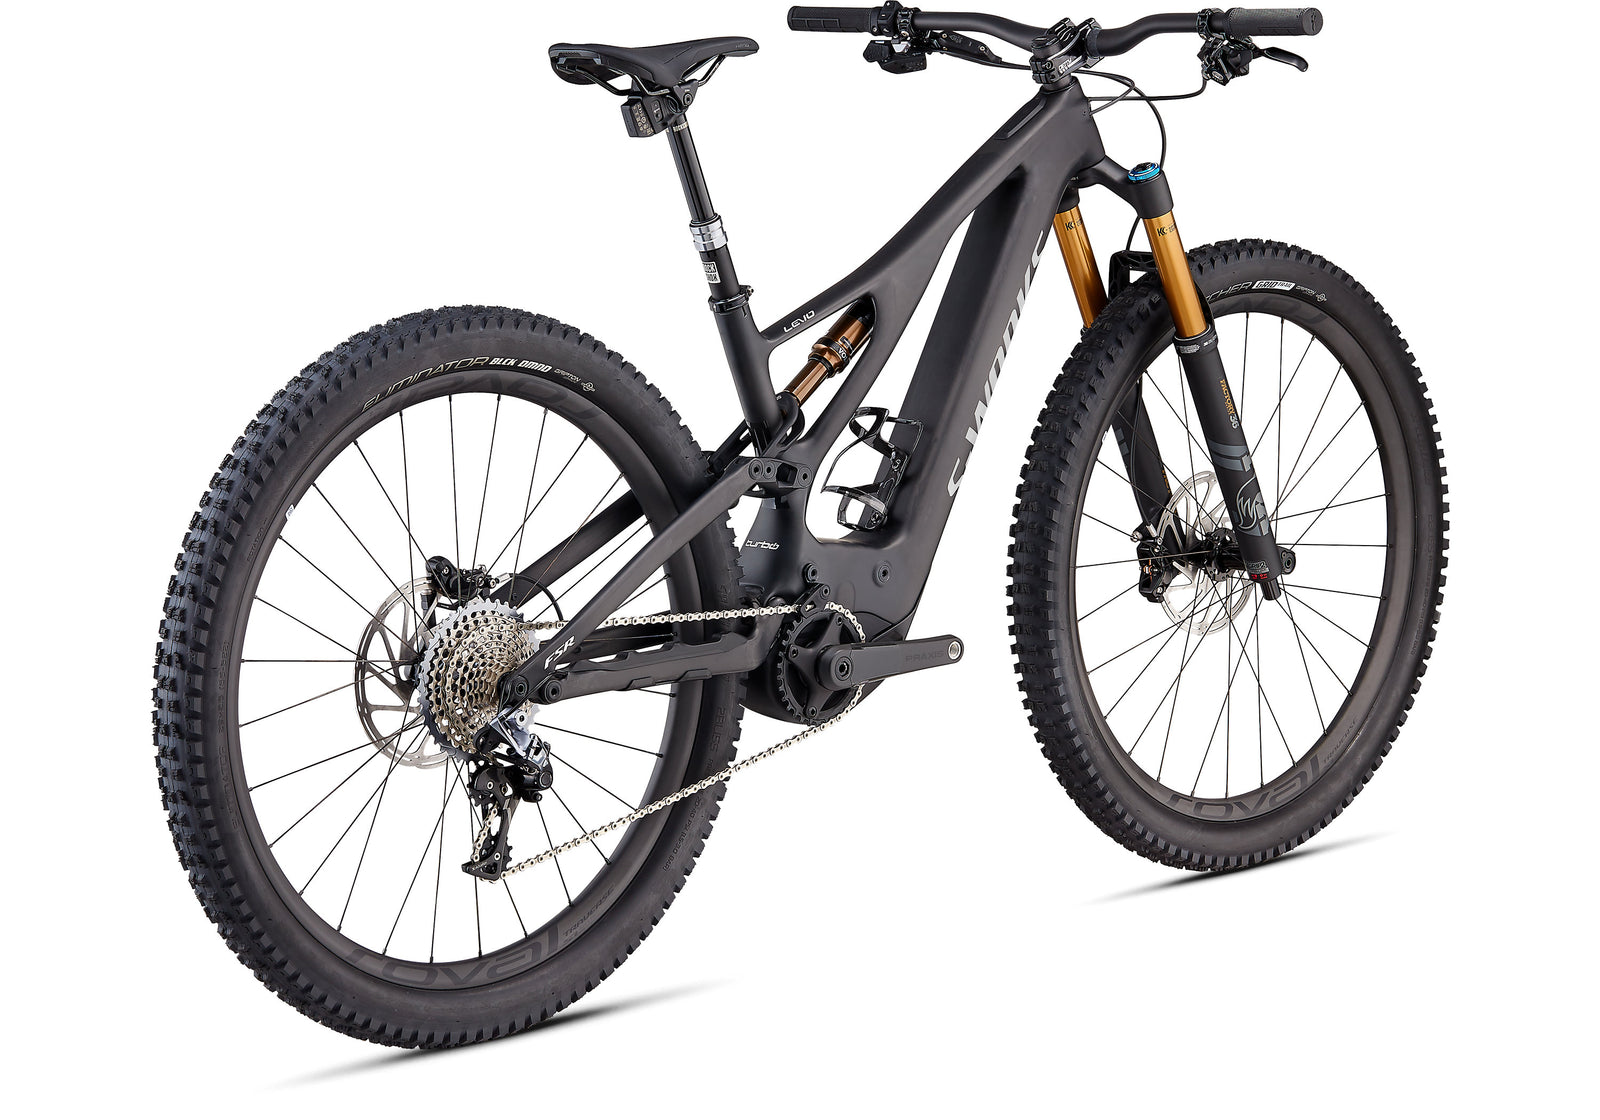 2020 S-Works Turbo Levo